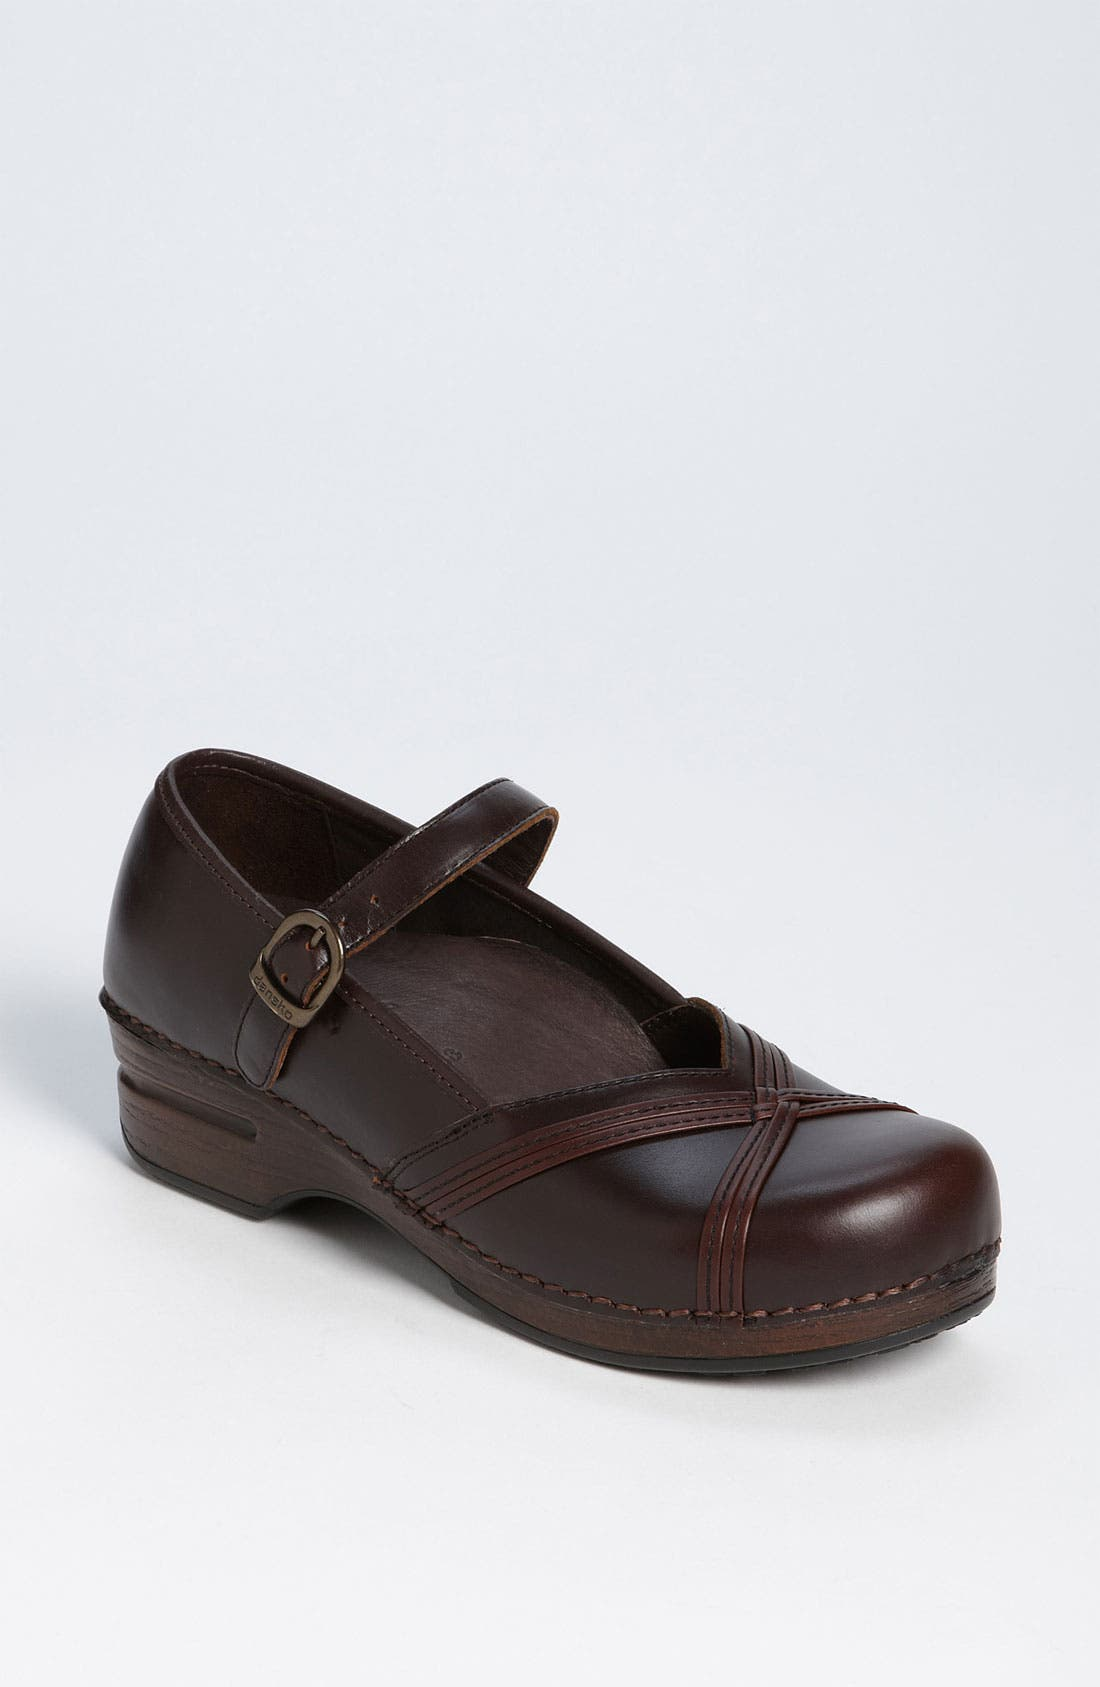 Alternate Image 1 Selected - Dansko 'Tacey' Flat